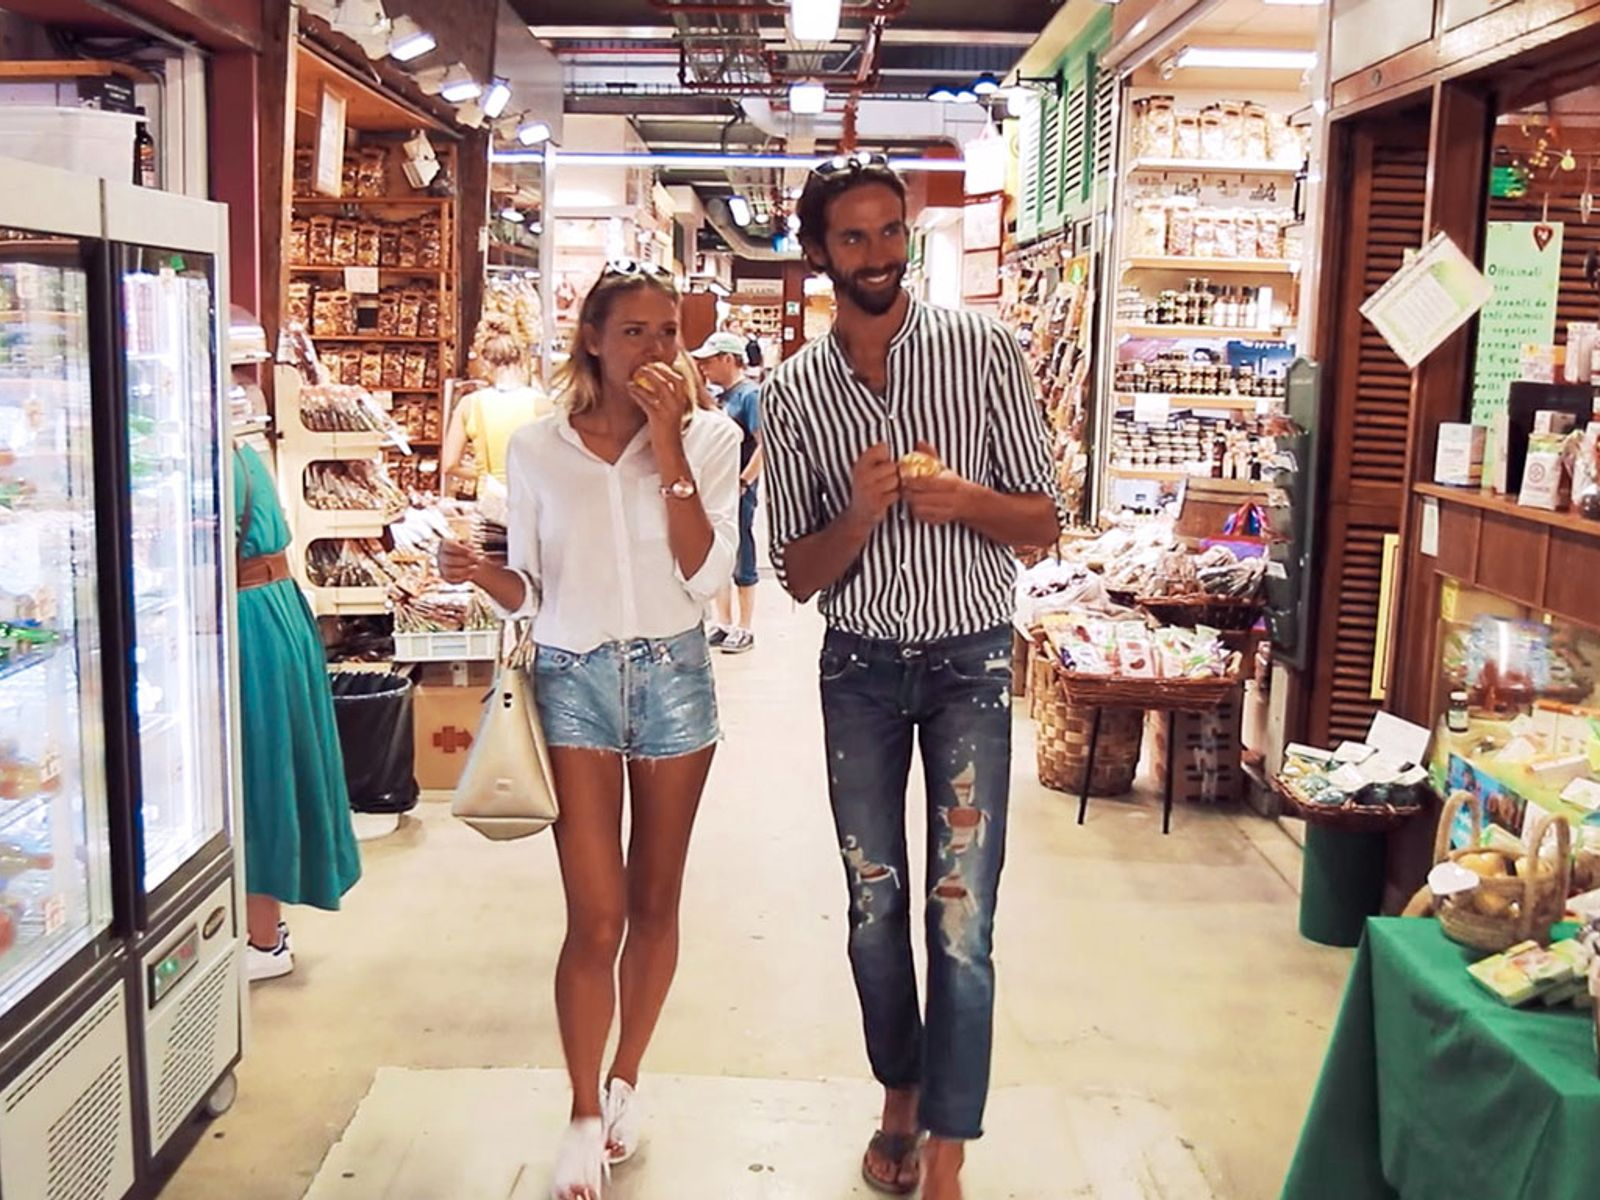 Couple Browsing Grocery Store for Online Italian cookling class